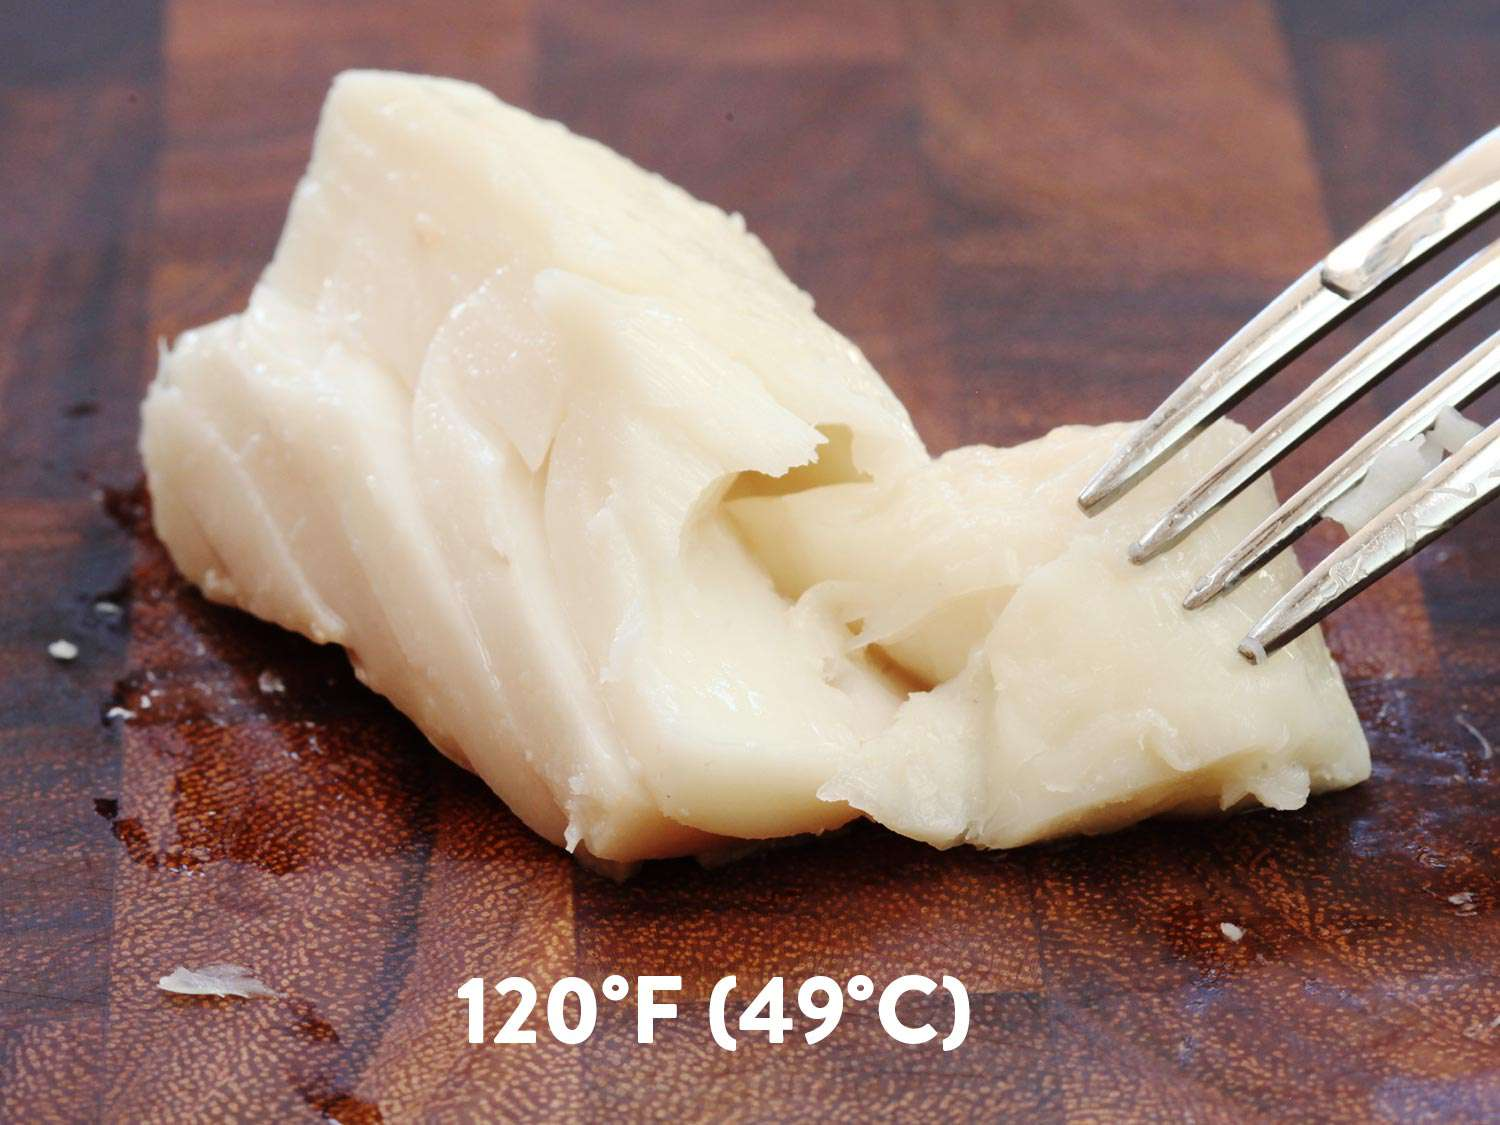 A piece of sous vide halibut cooked to 120 degrees F. It's being flaked with a fork.